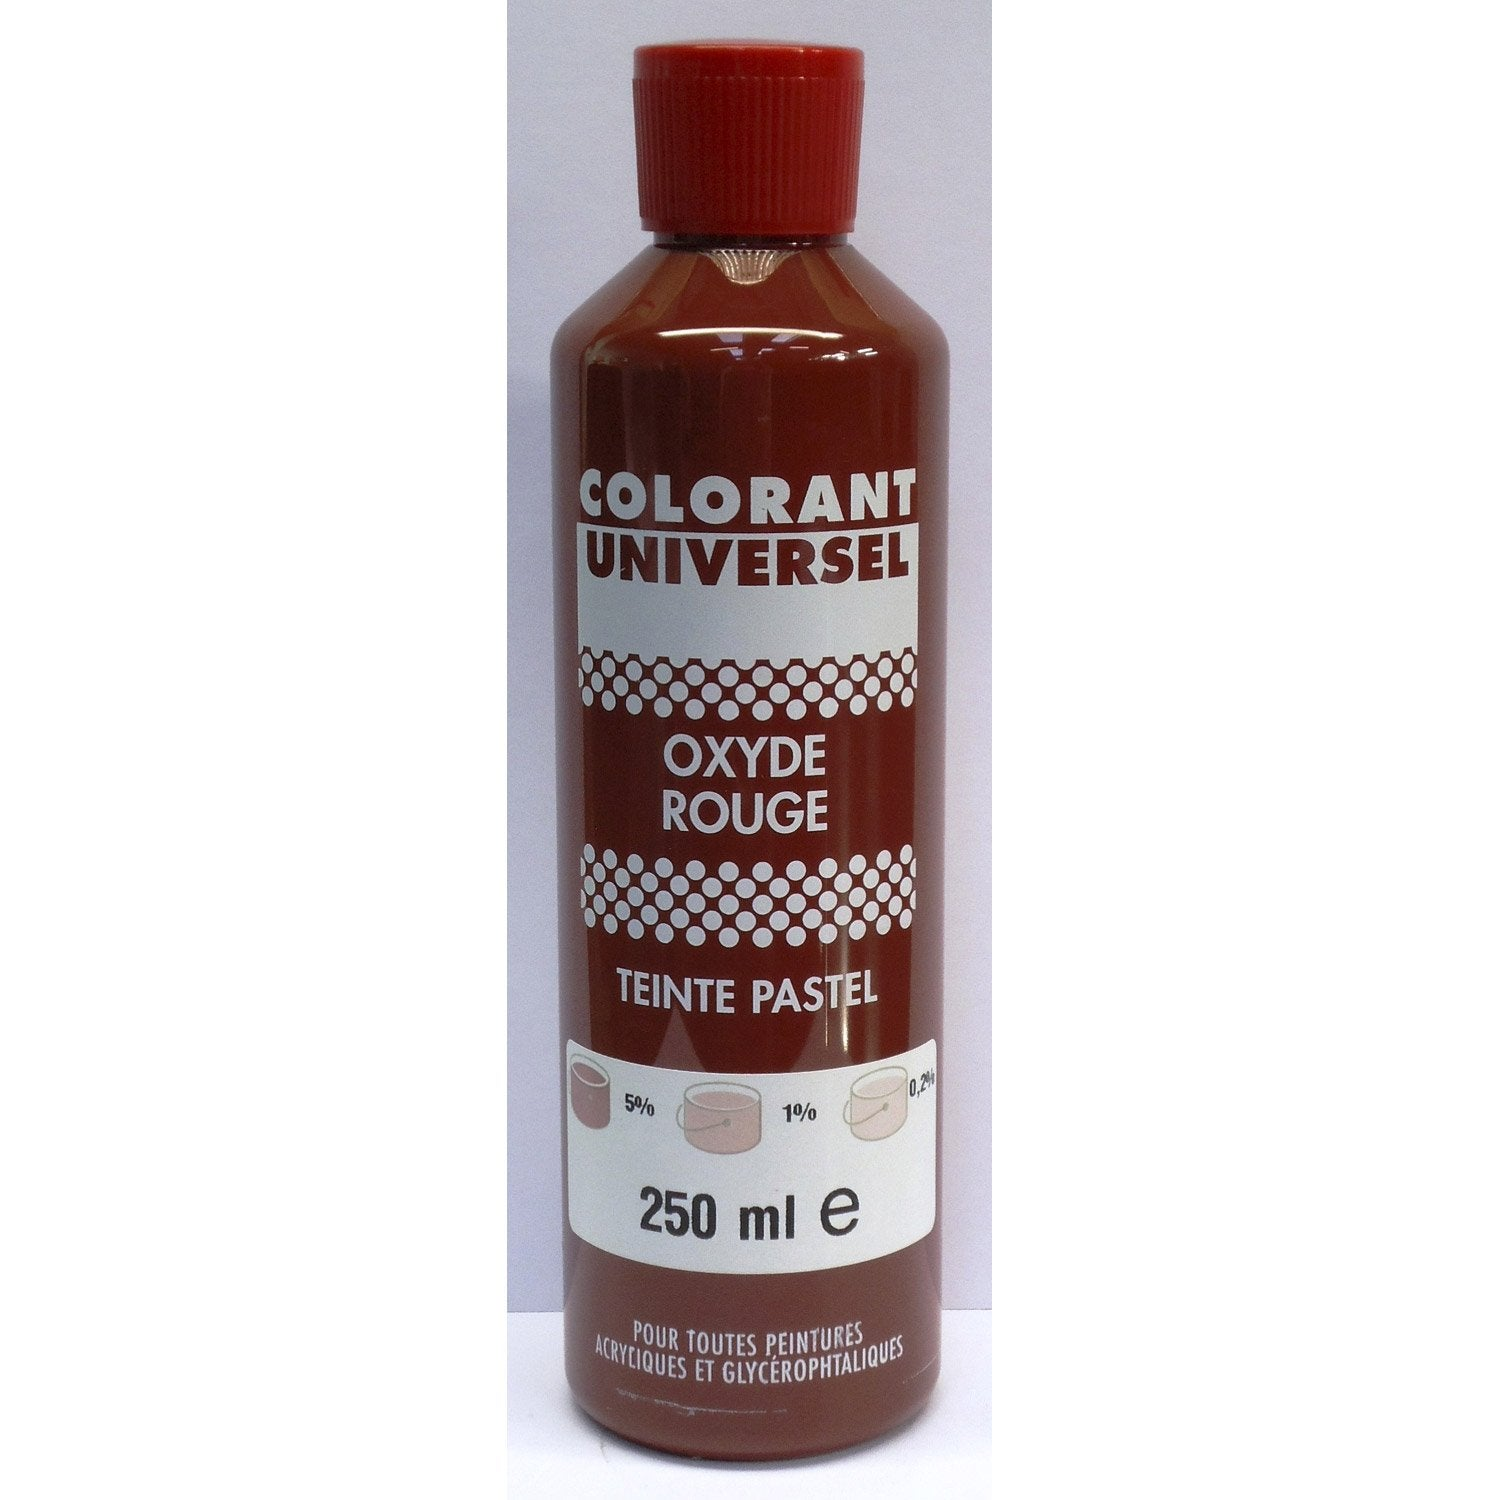 colorant universel oxyde rouge 250 ml leroy merlin - Peinture Colorant